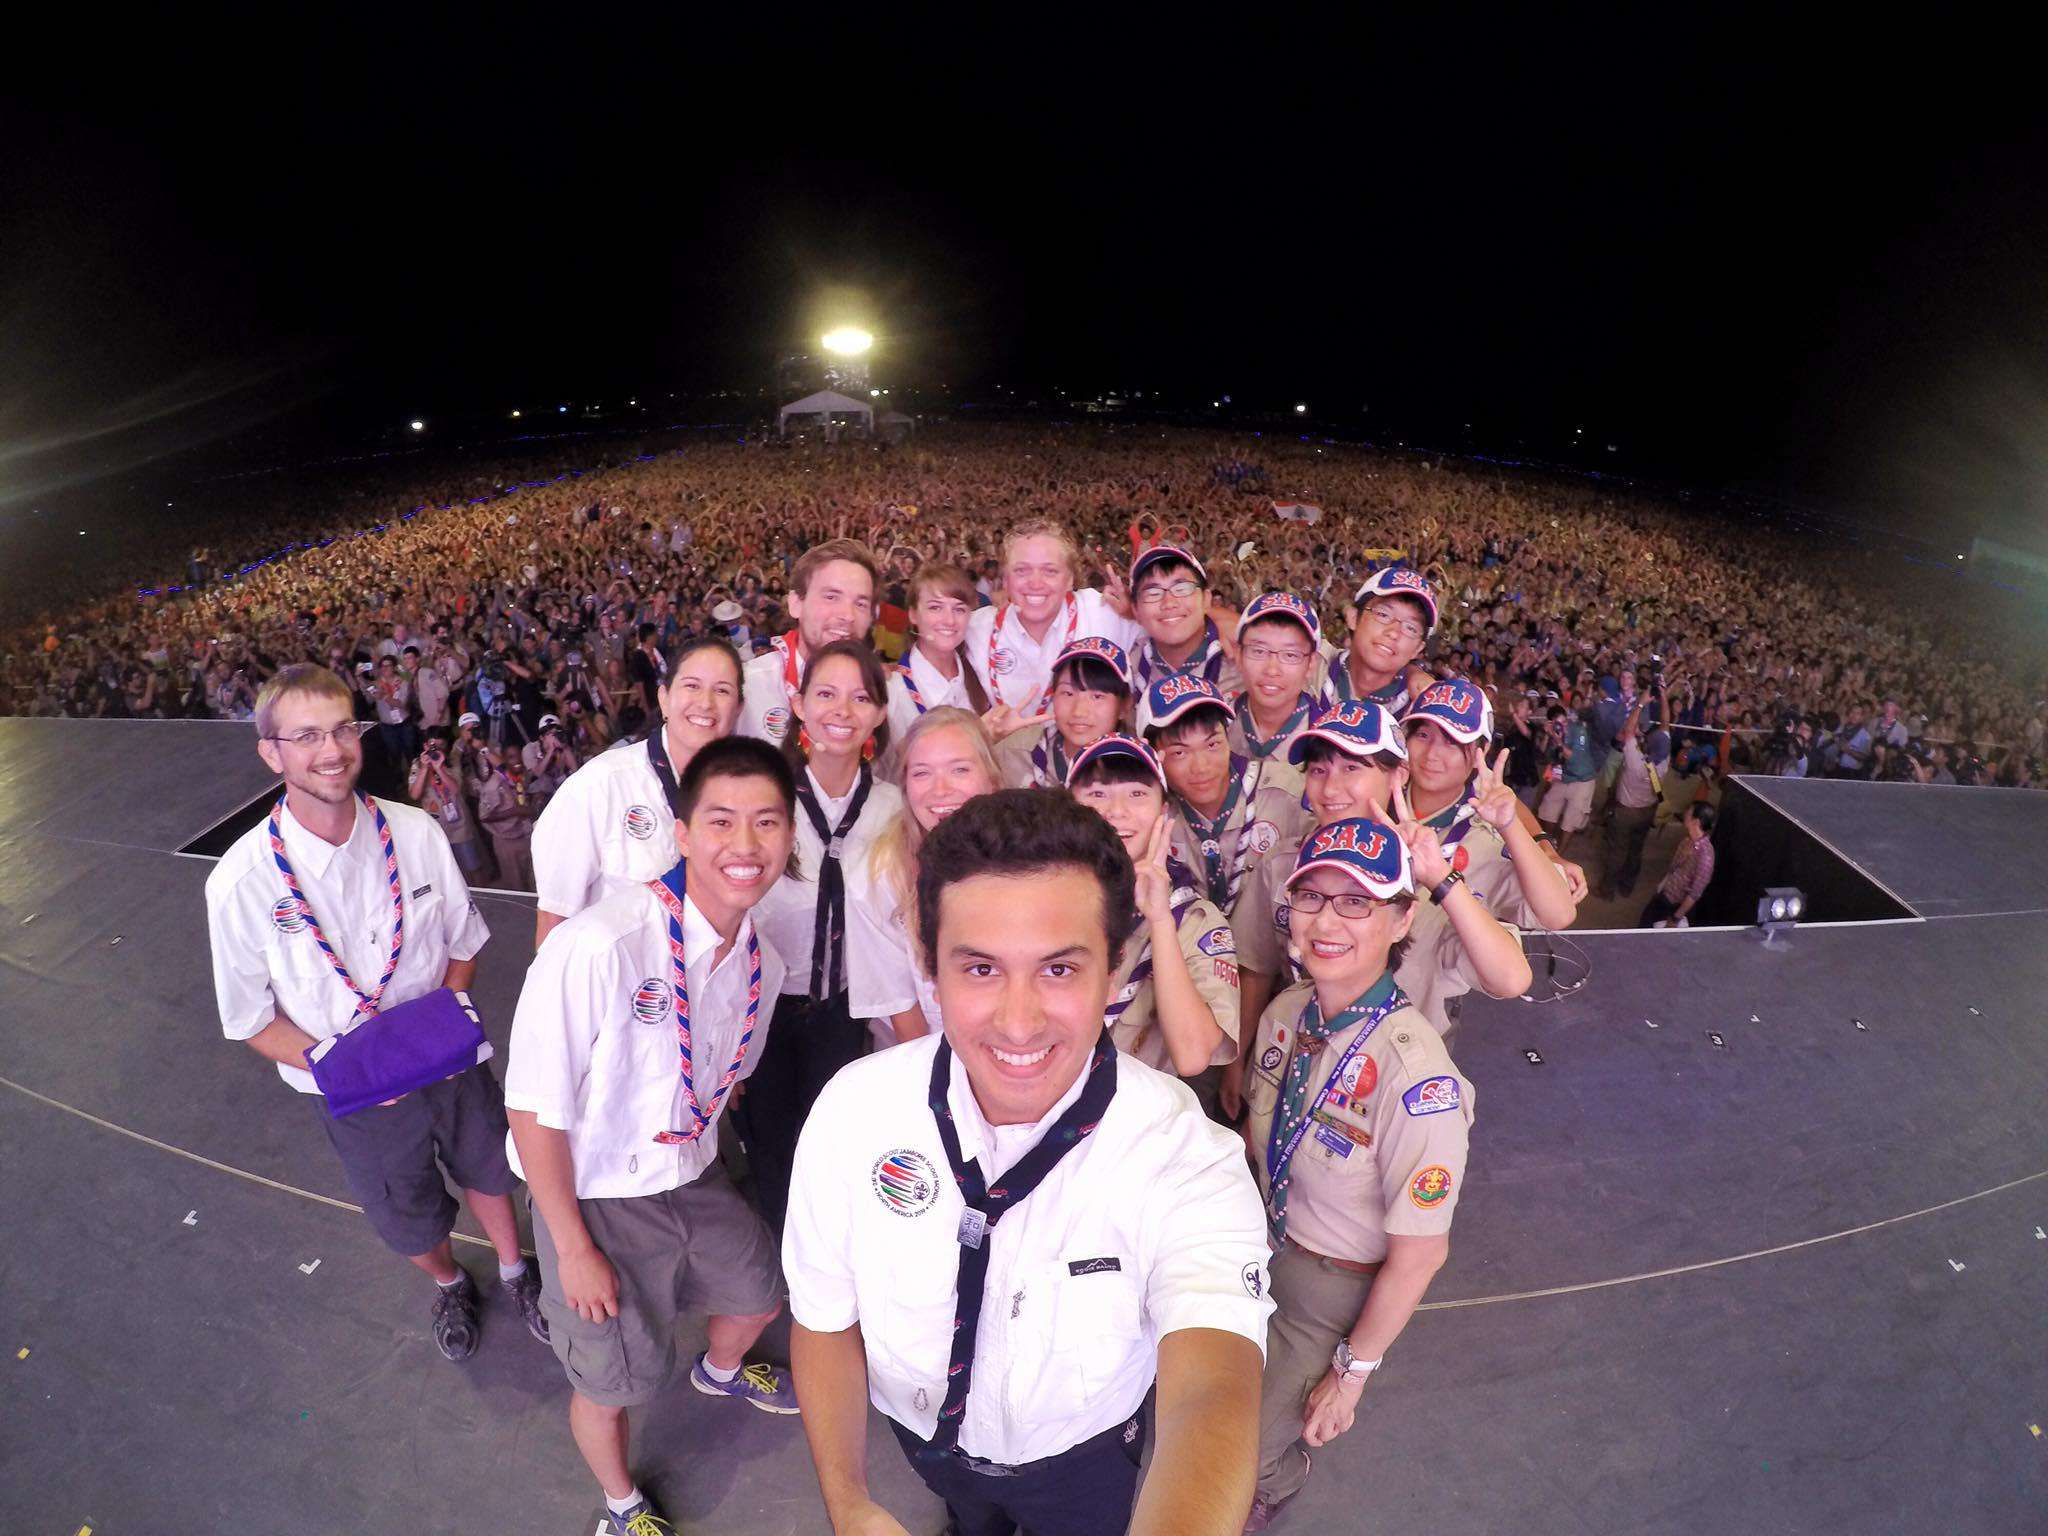 Willy Xiao on stage at the World Scout Jamboree